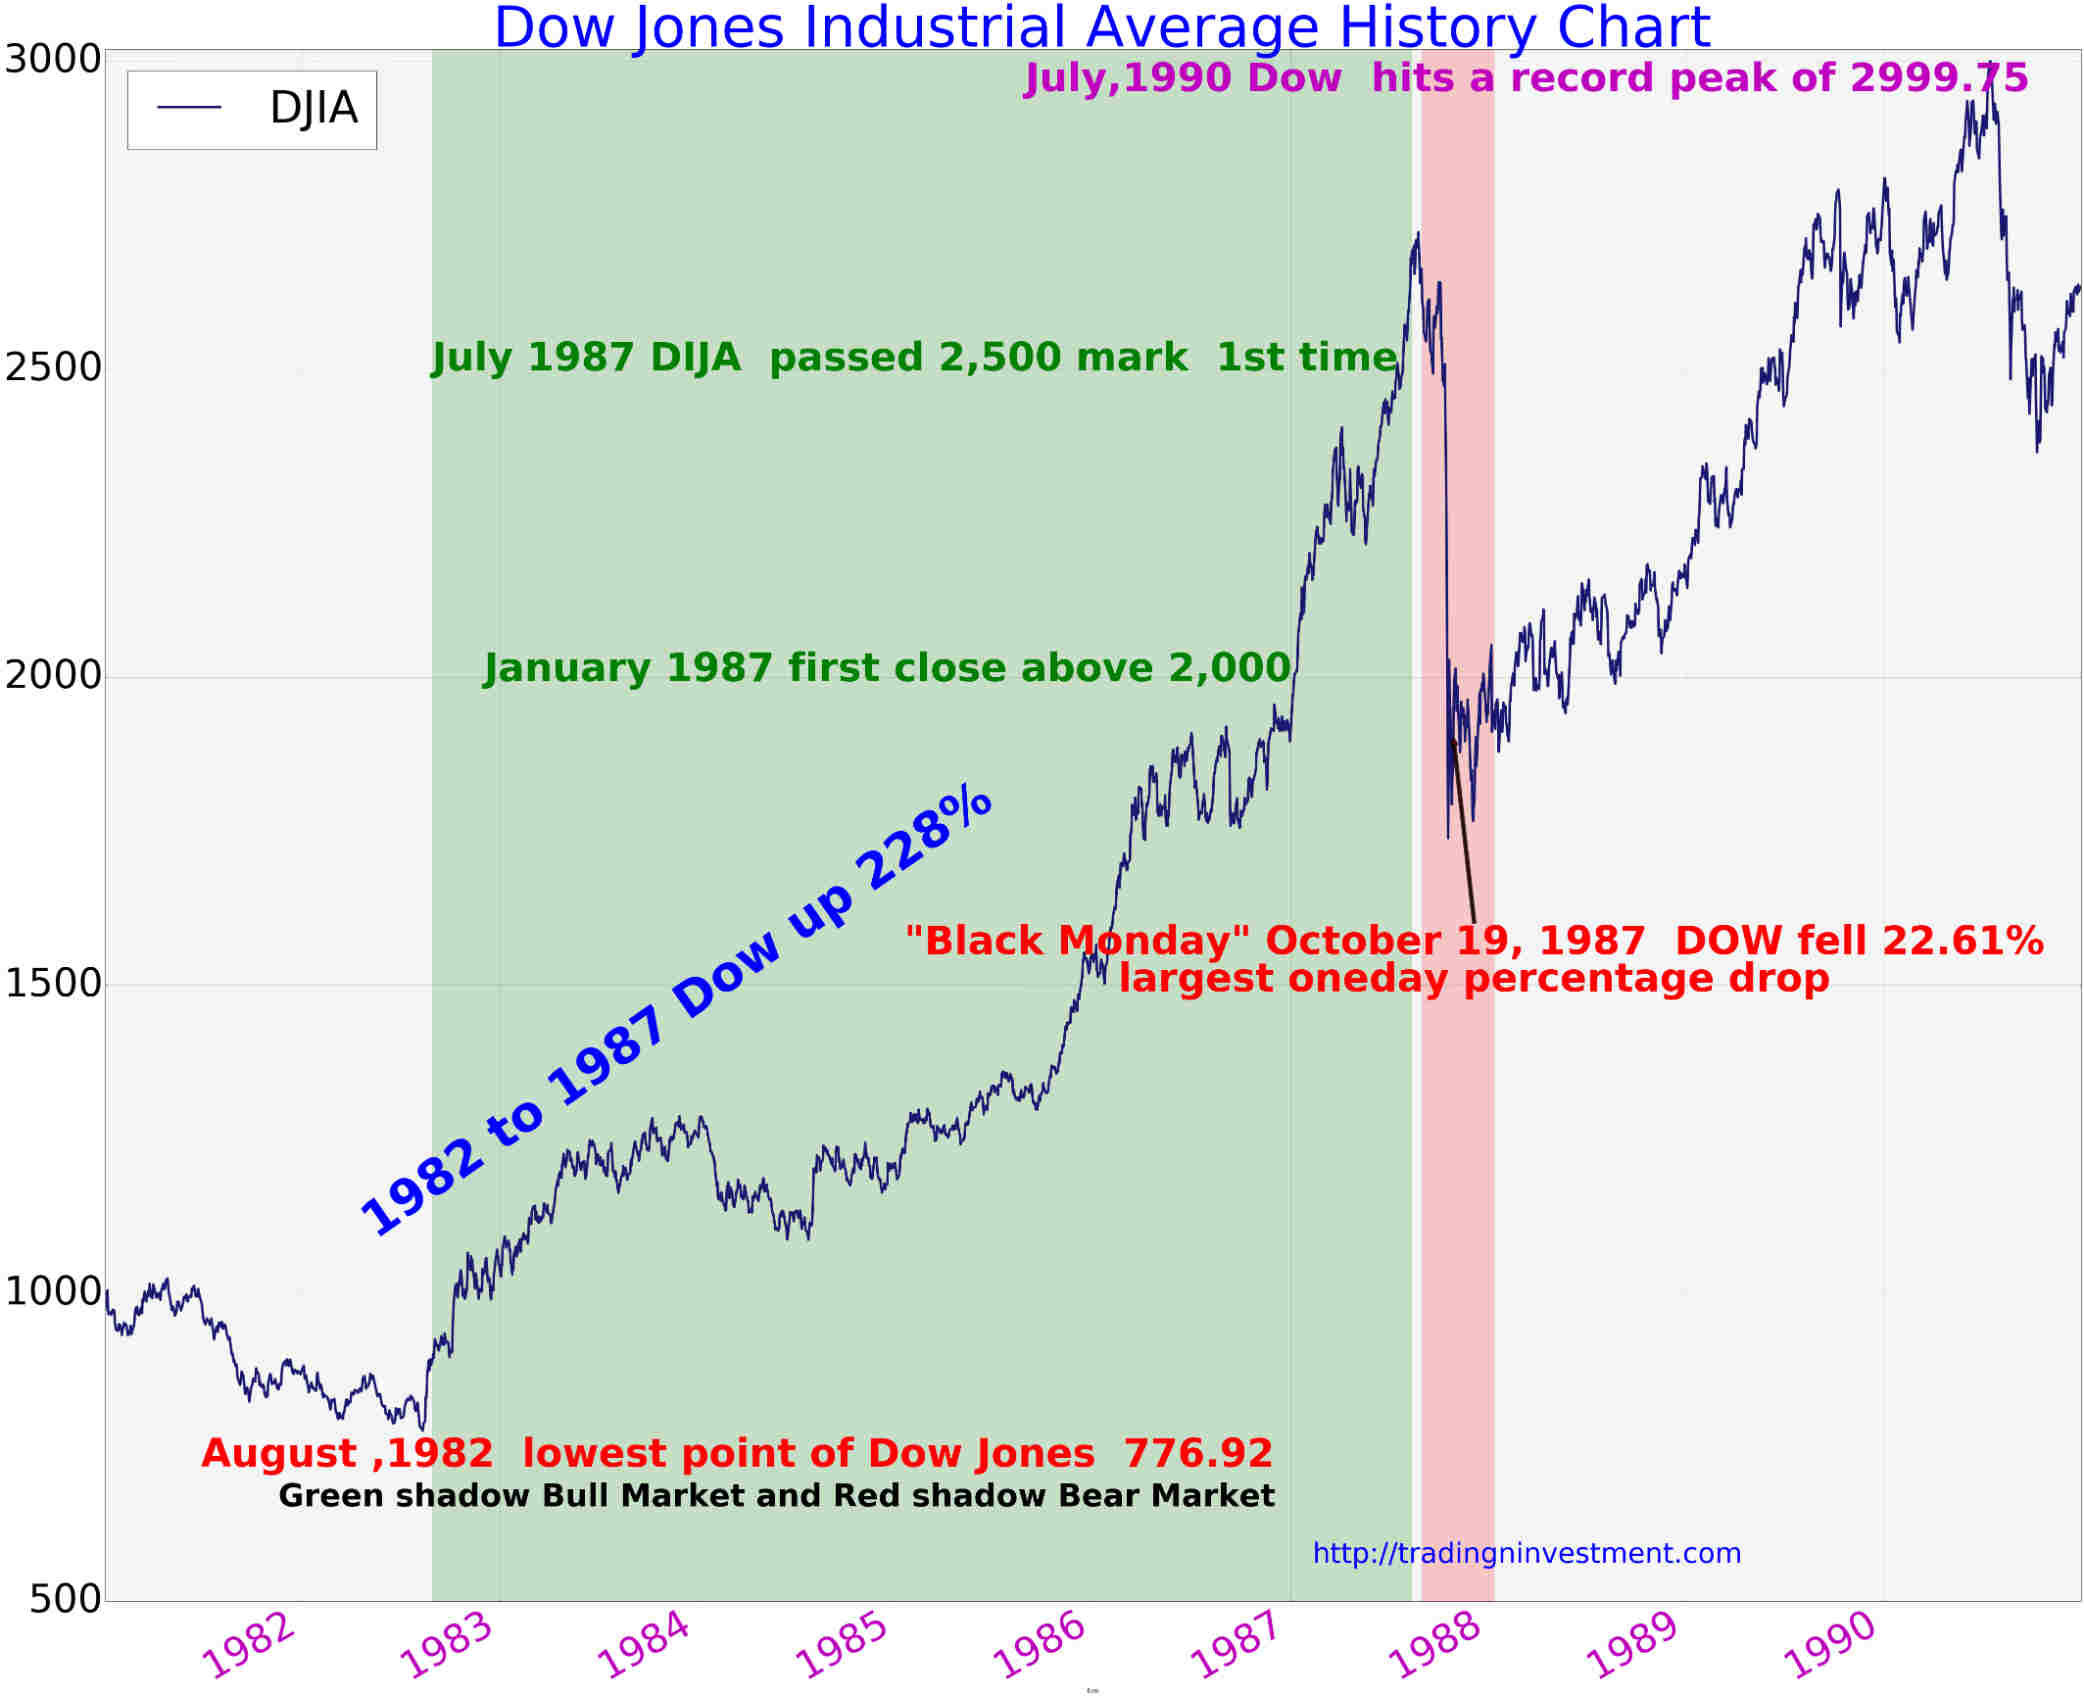 Dow Jones Average History Chart 1981 To 1990